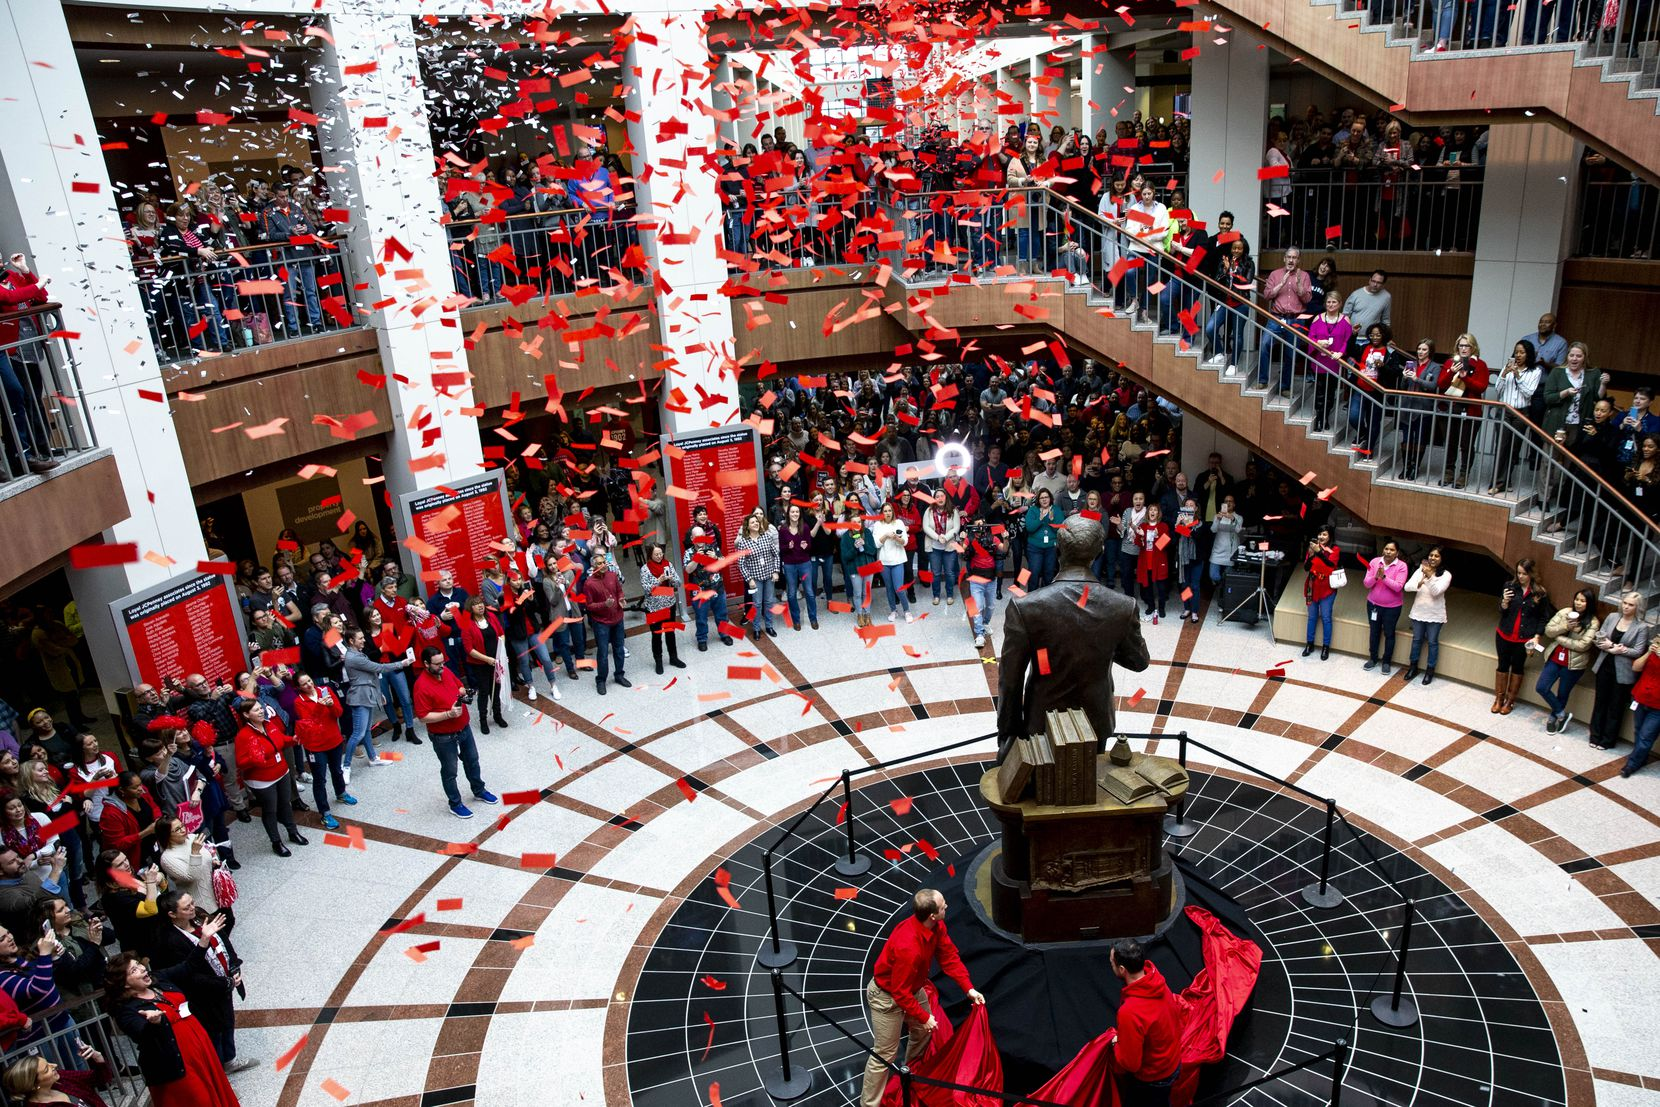 Employees pop confetti as Johnathan Dagerath, left, and Michael Fountas, right, unveil the James Cash Penney statue in its new spot in the north atrium of the J.C. Penney headquarters in Plano on March 1, 2019.